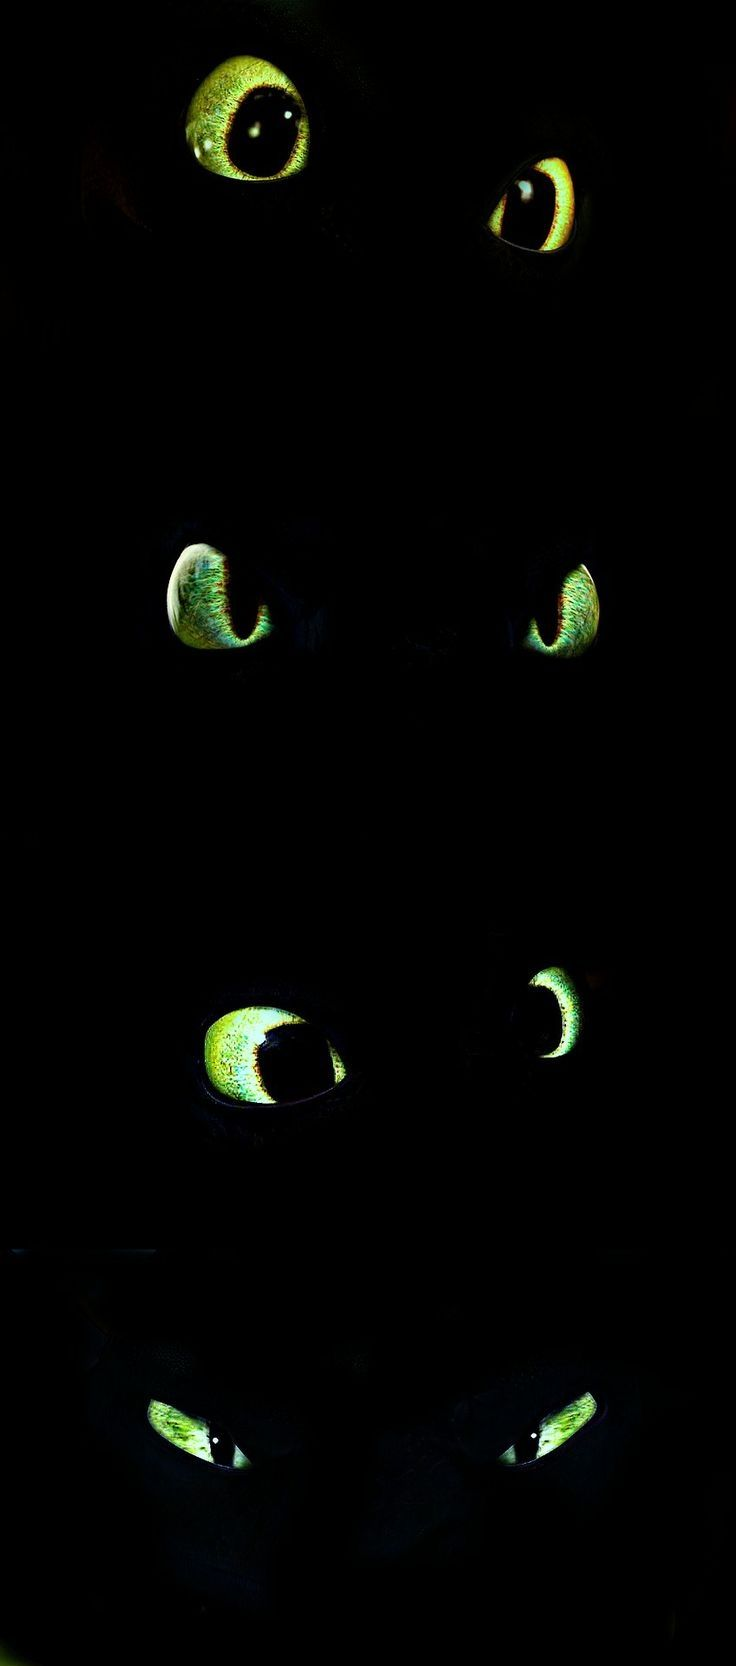 The many eyes of toothless